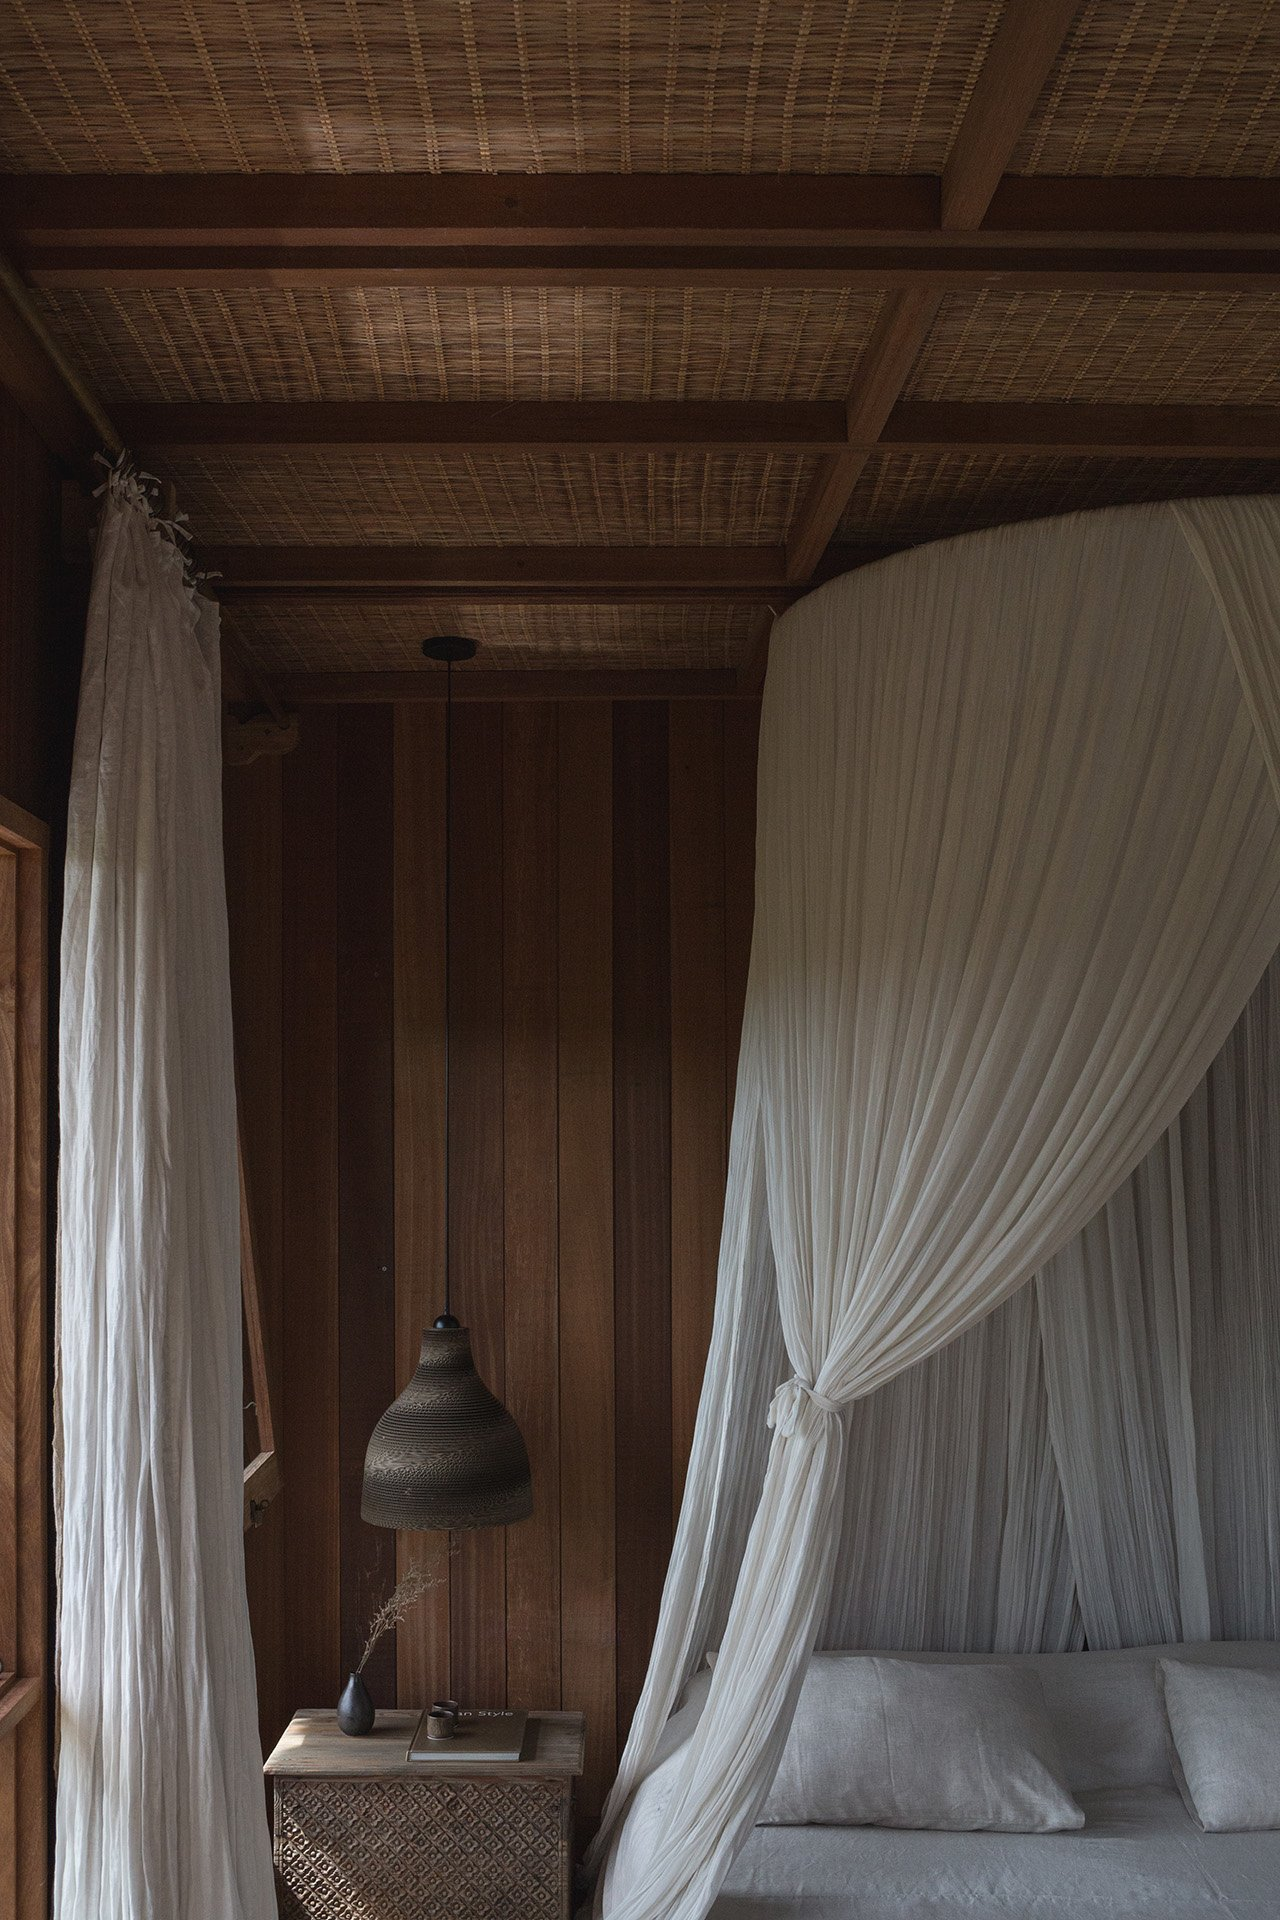 The Chaplin bedroom. Photo by Jencquel Tommaso Riva. Styling by Lisa Scapin.